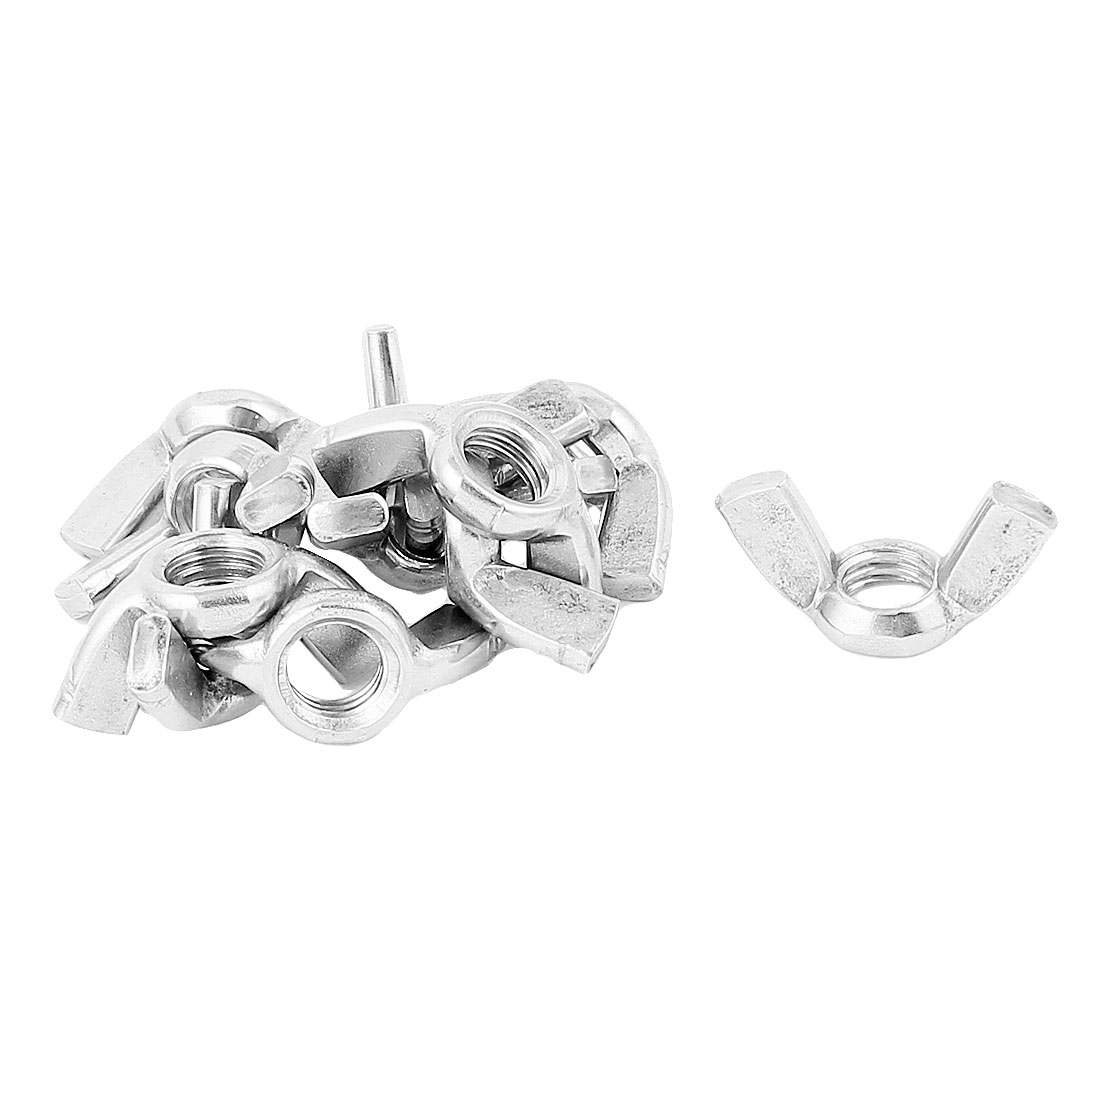 10pcs 304 Stainless Steel M12 Thread Butterfly Nut Wingnut Silver Tone